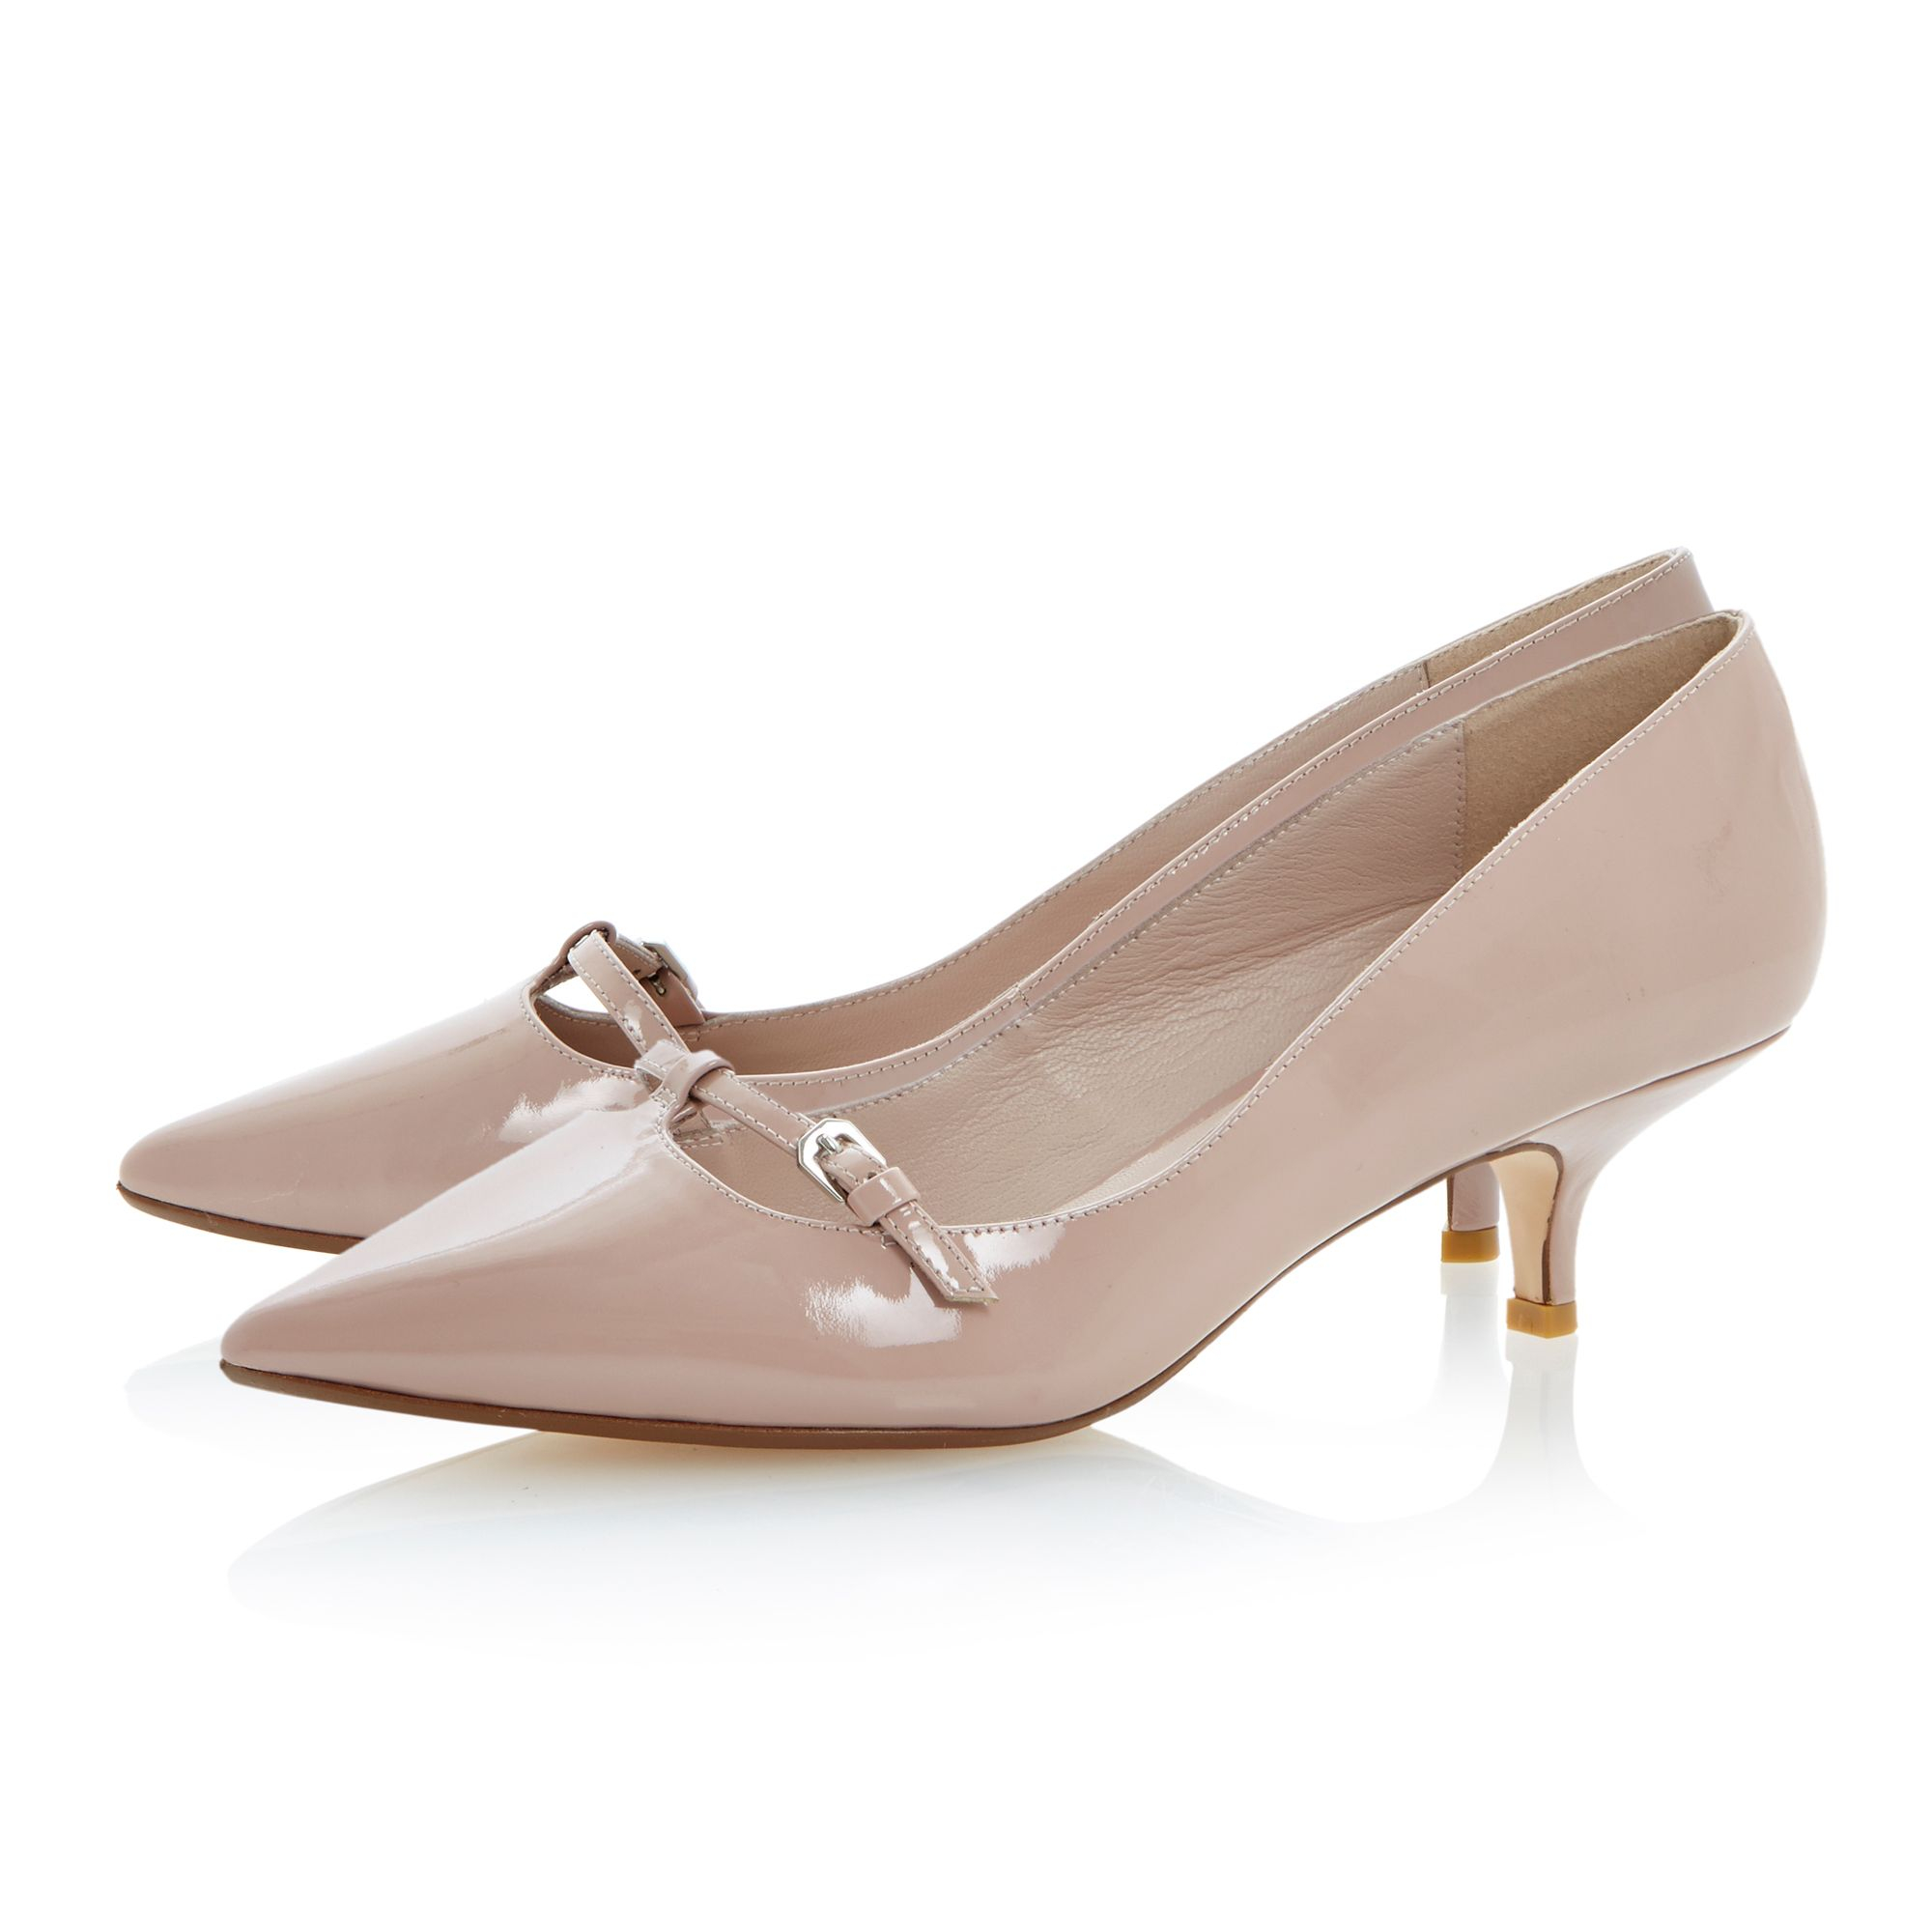 Pink Kitten Heel Pumps - Is Heel